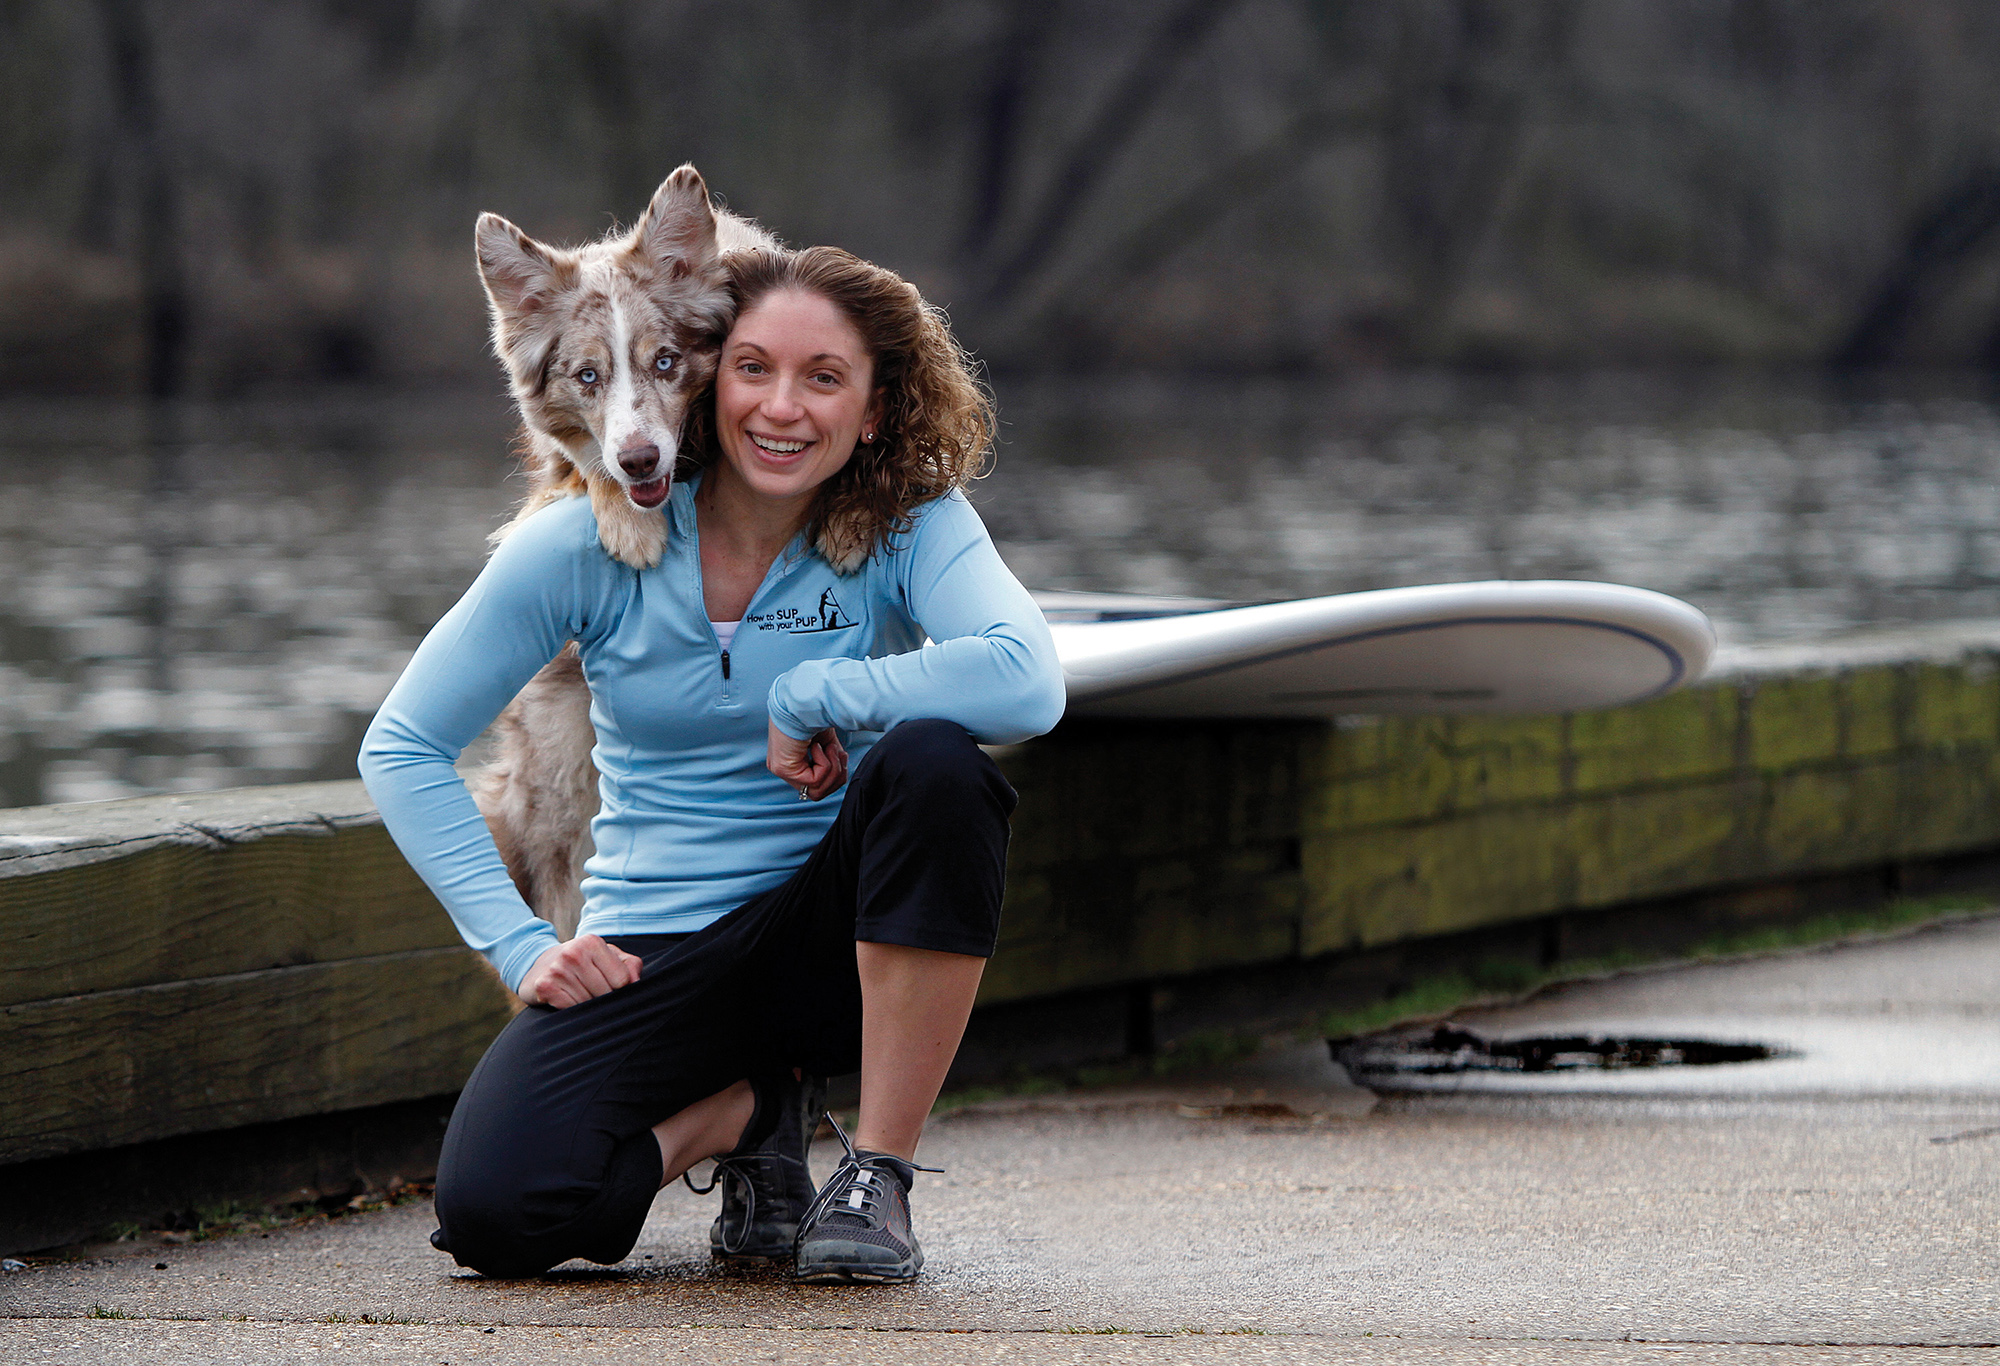 Maria with her dog Riley.